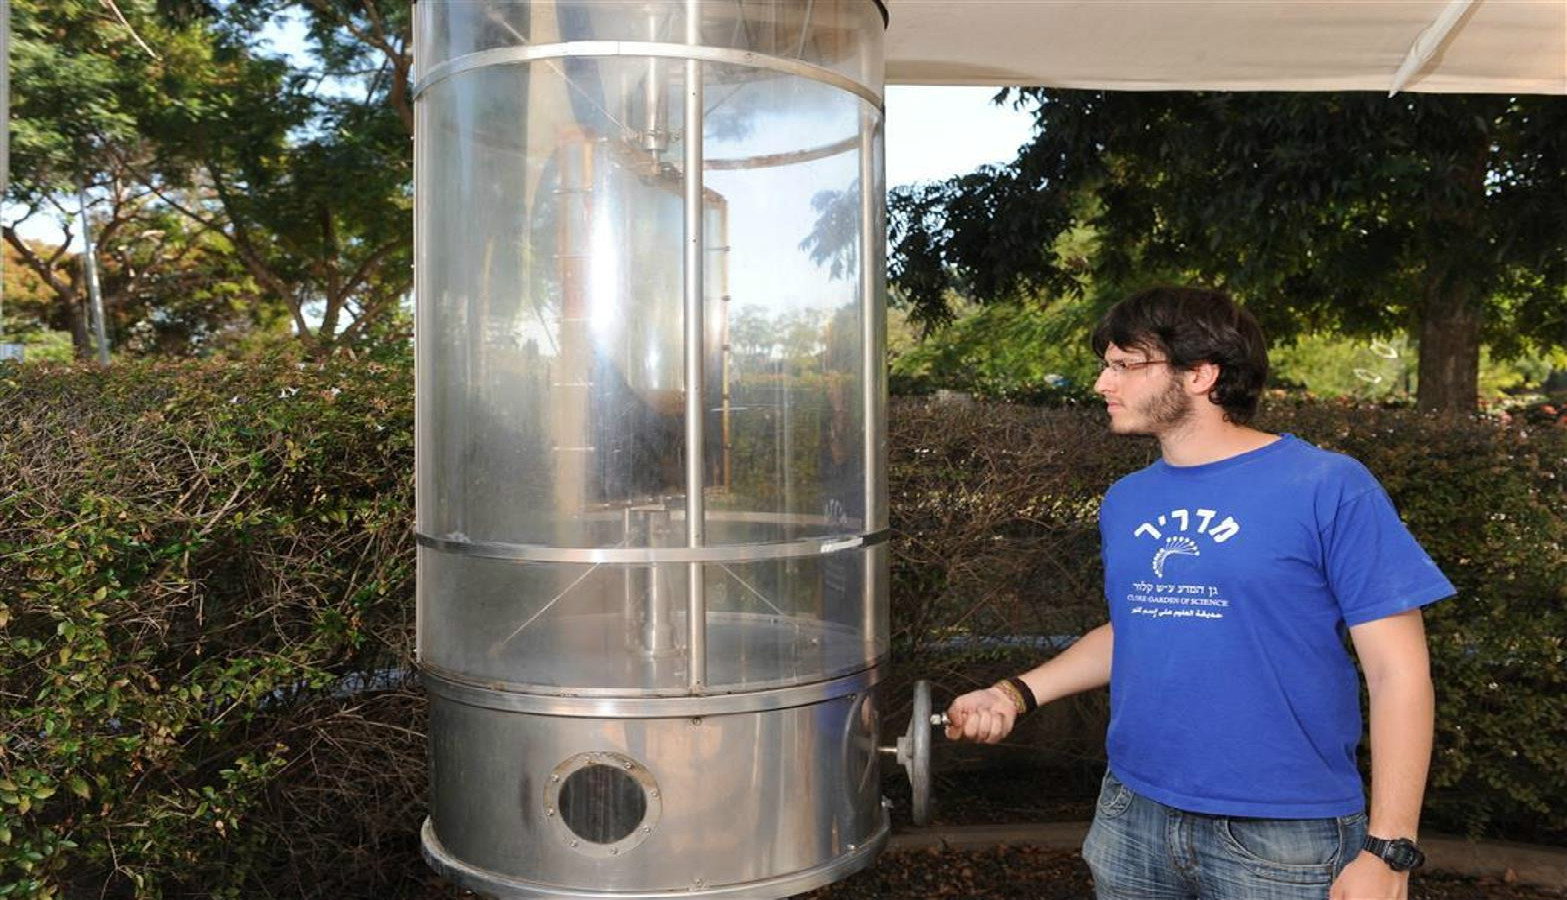 A water centrifuge in the Clore Garden of Science at the Weizmann Institute, Rehovot. Photo by Liora Goldman